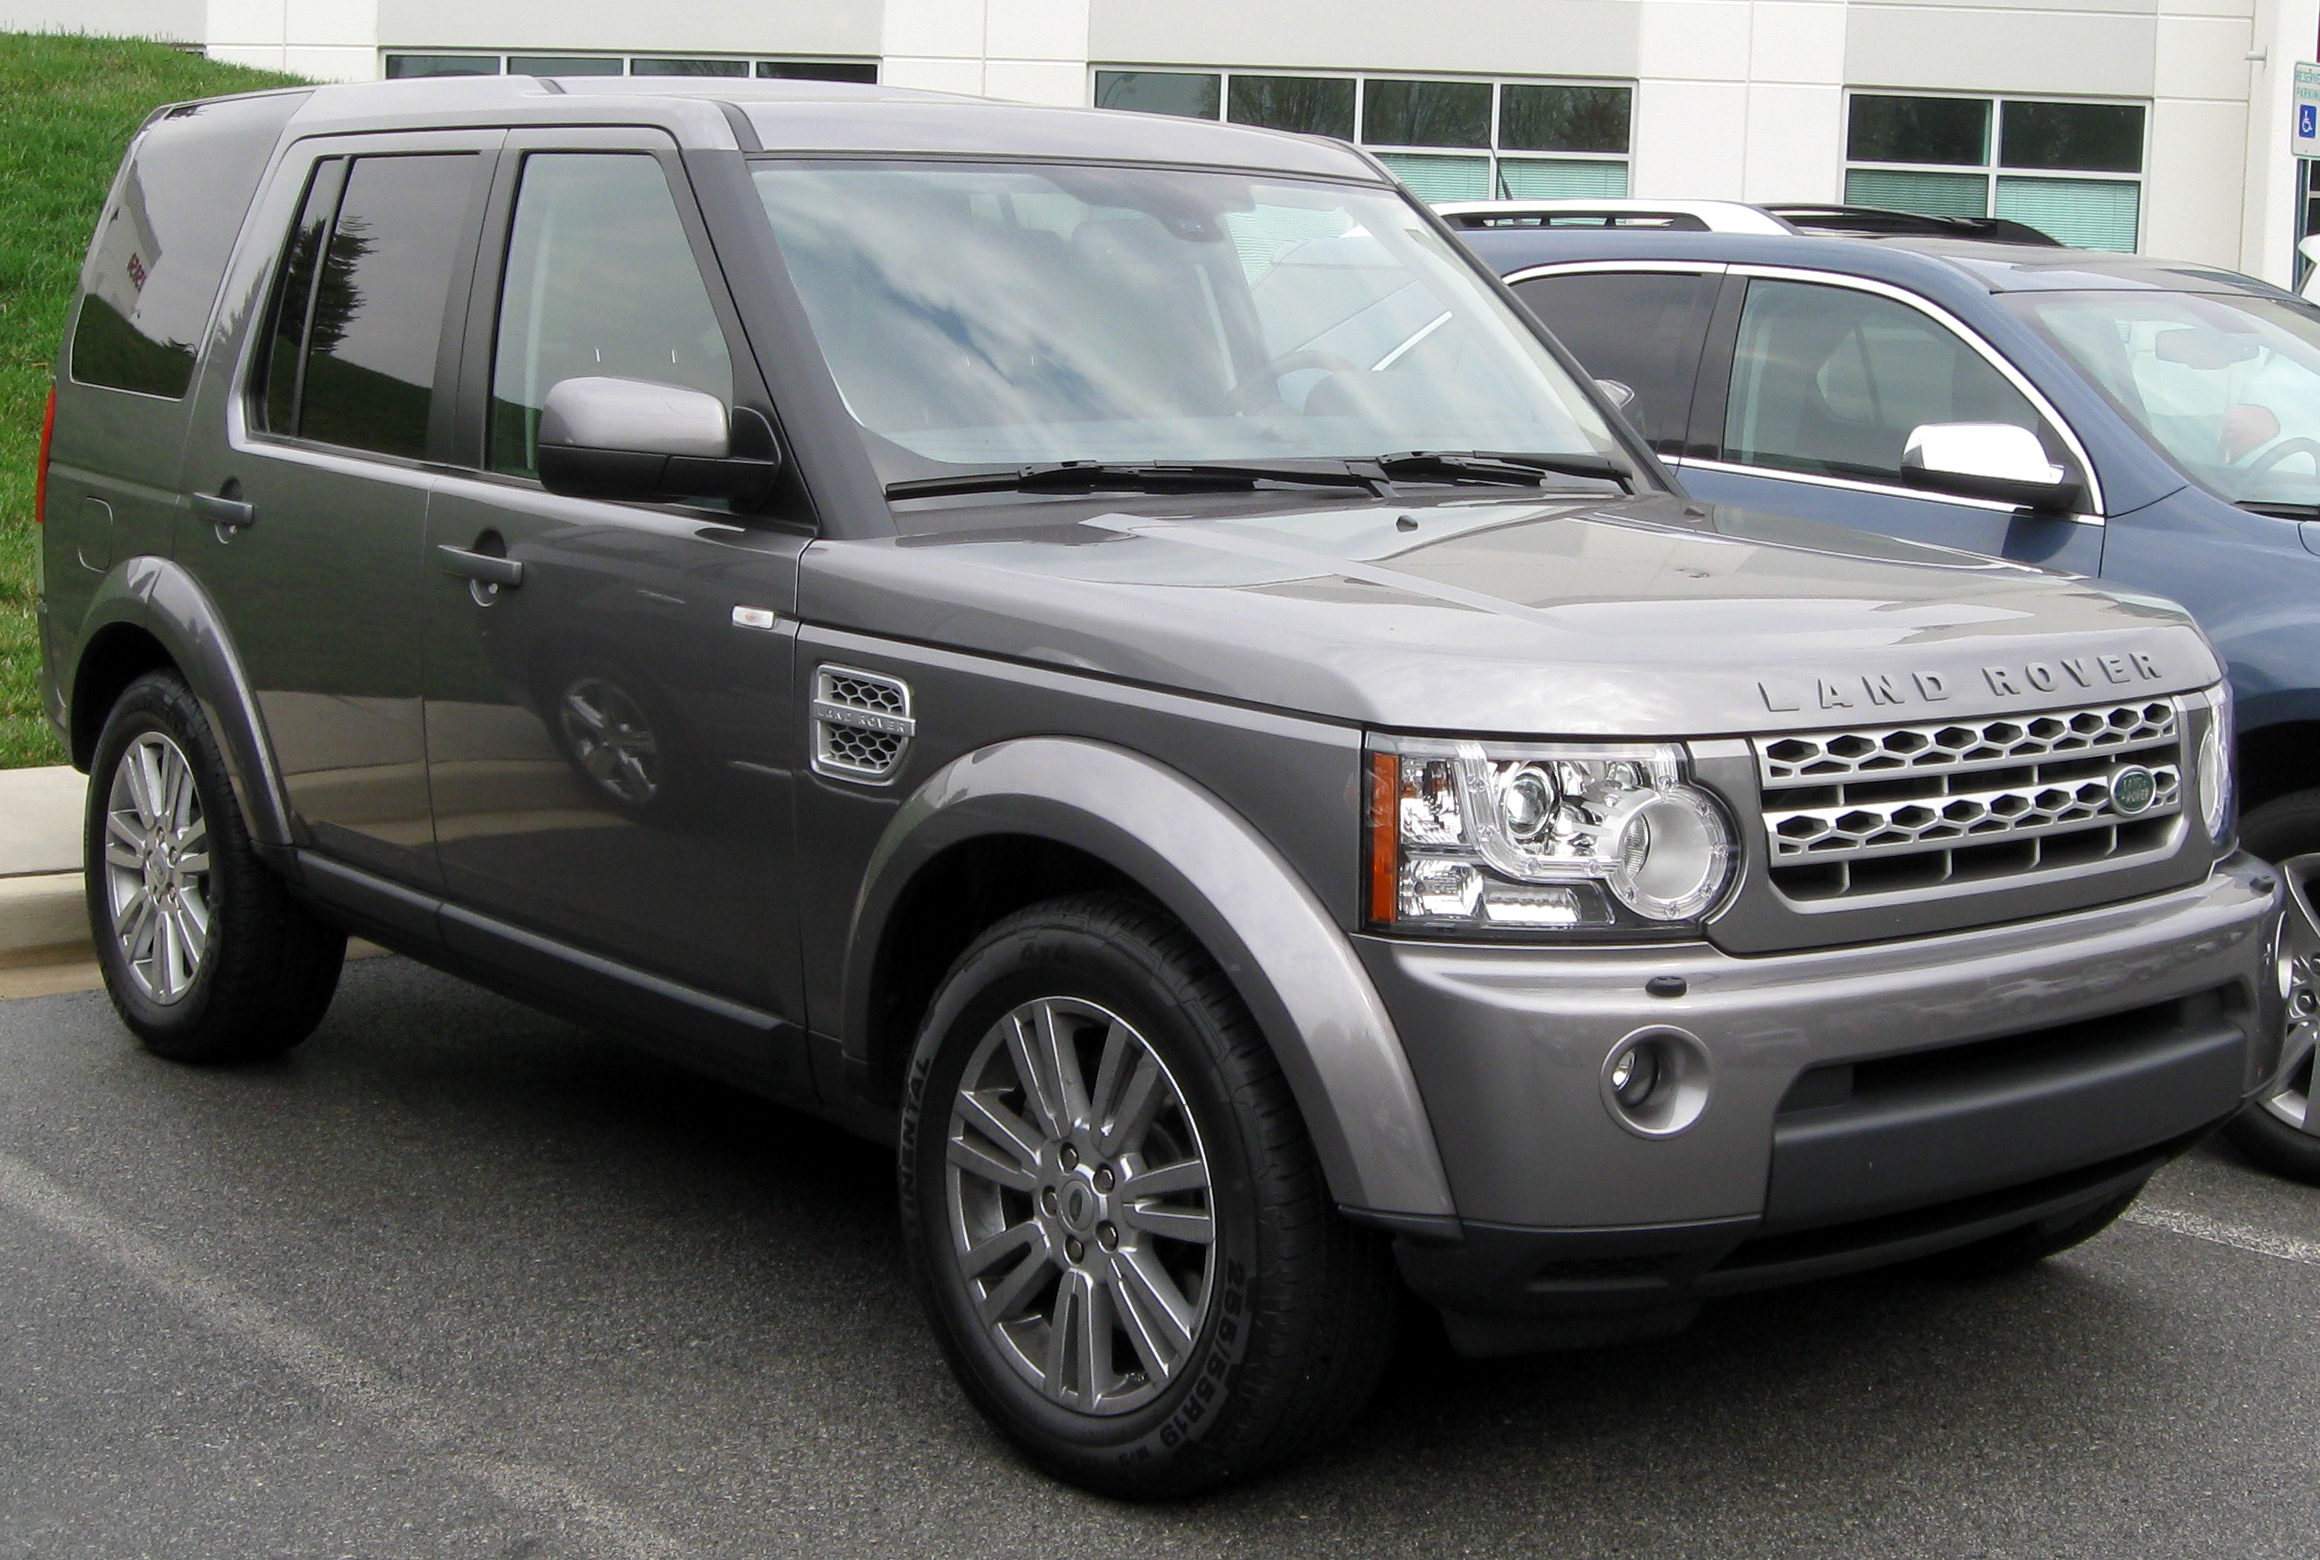 2011 Land Rover LR4 Information and photos ZombieDrive